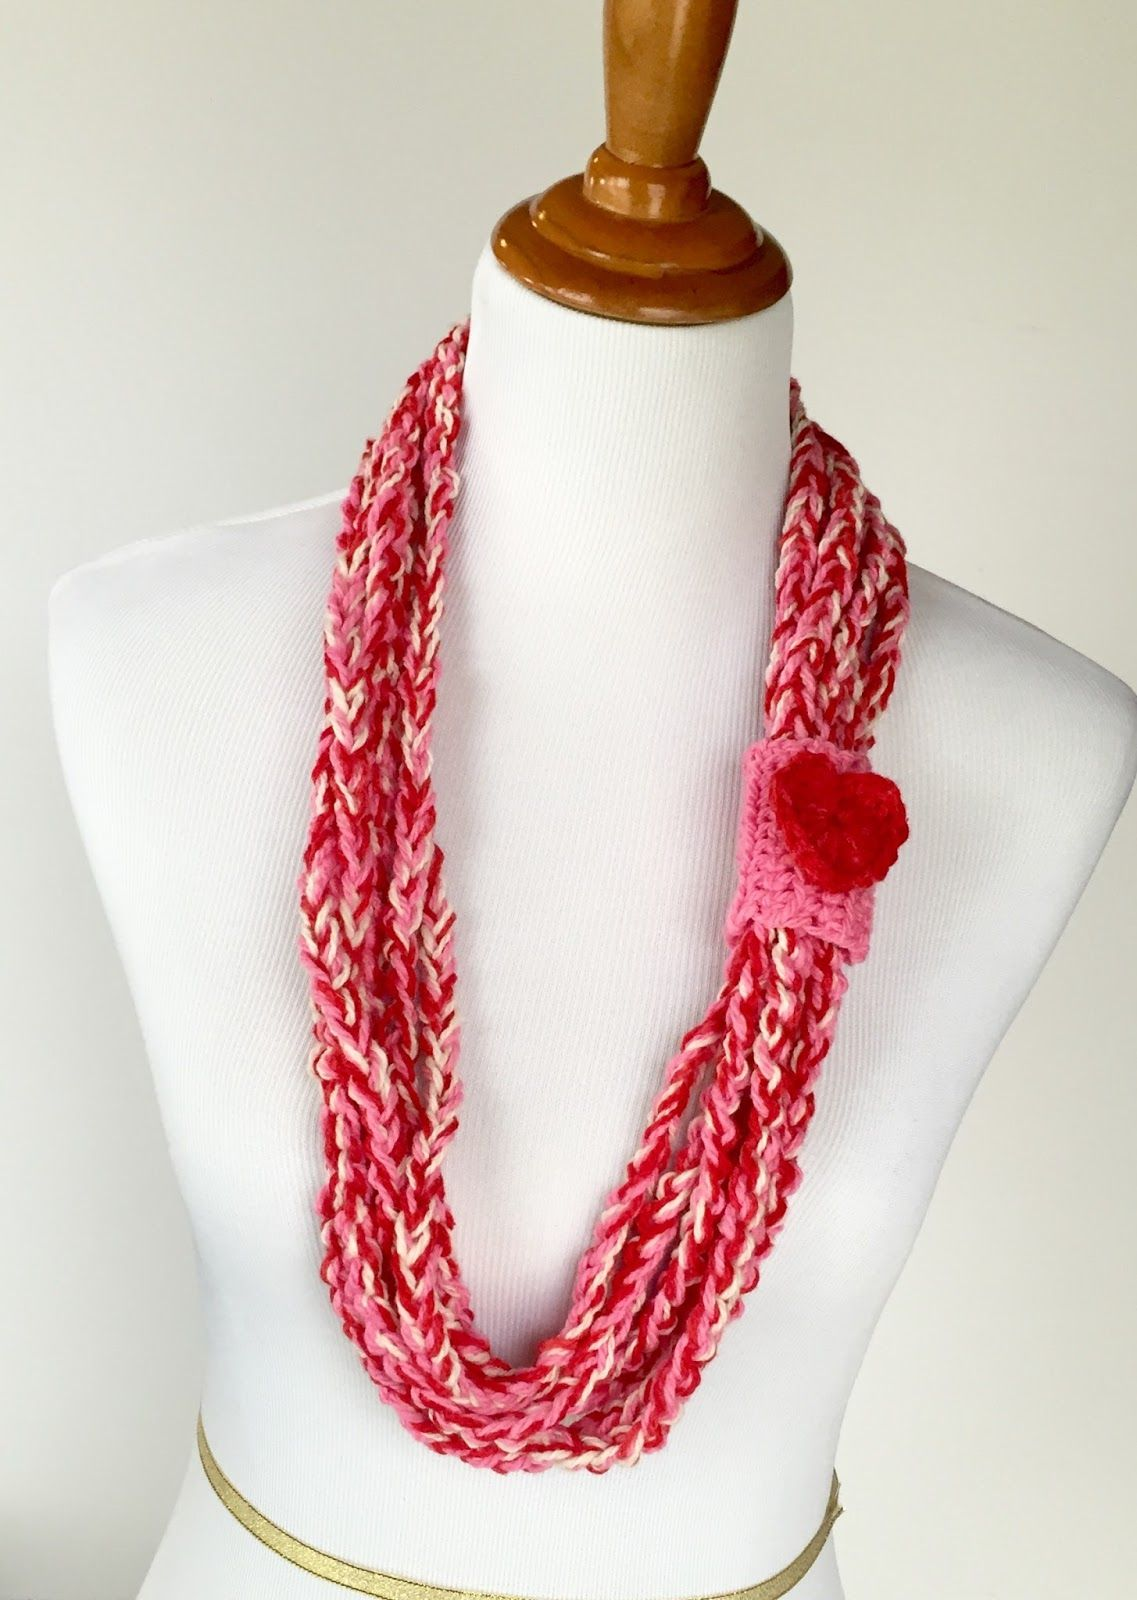 Crochet chain necklace - would do in \